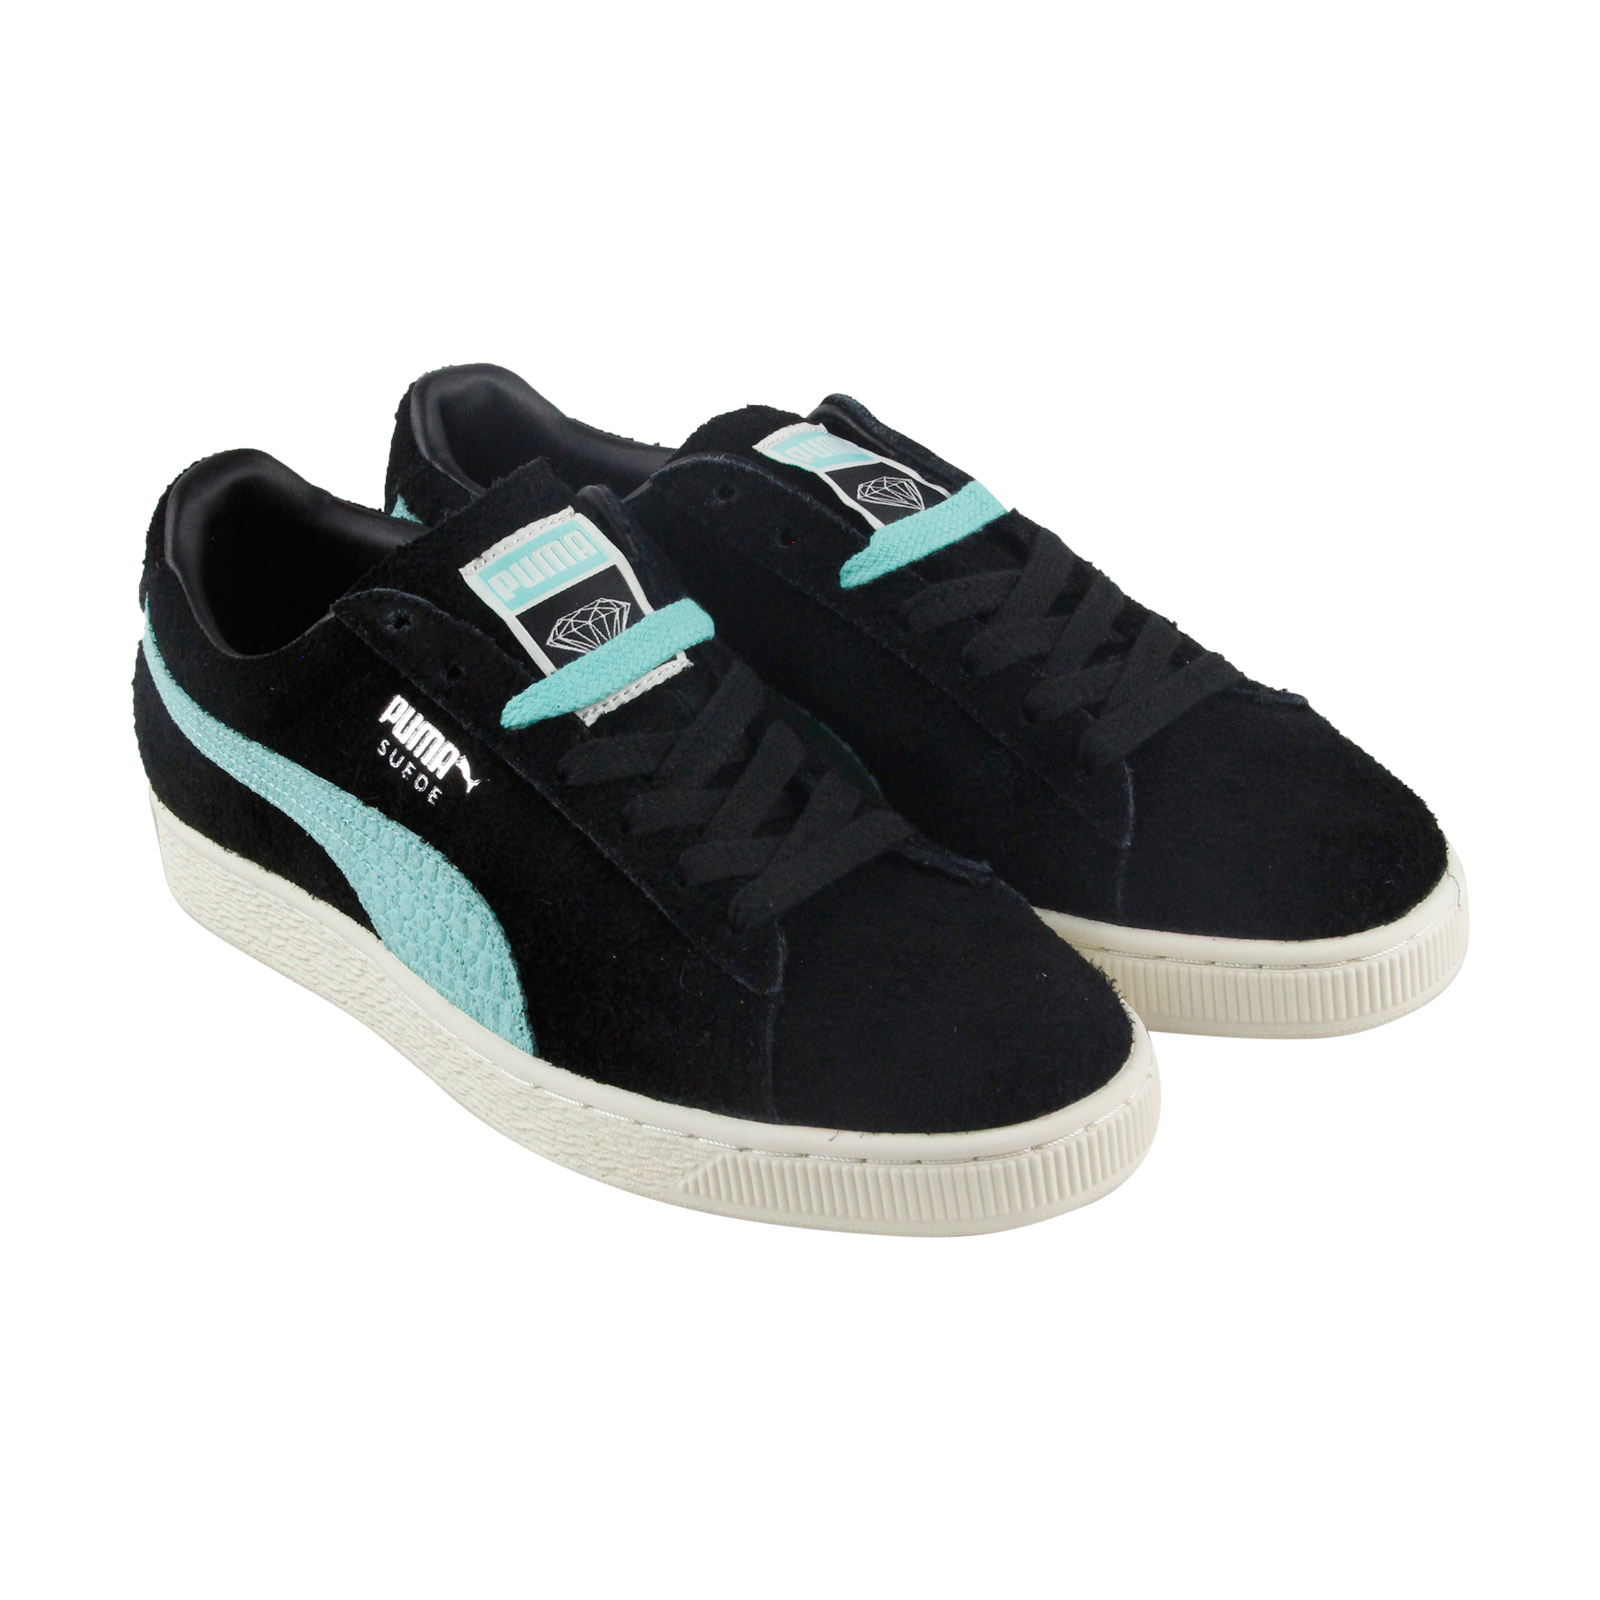 Puma-x-Diamond-Daim-36565001-Homme-Noir-Lacets-Decontractees-Low-Top-Sneakers-Chaussures